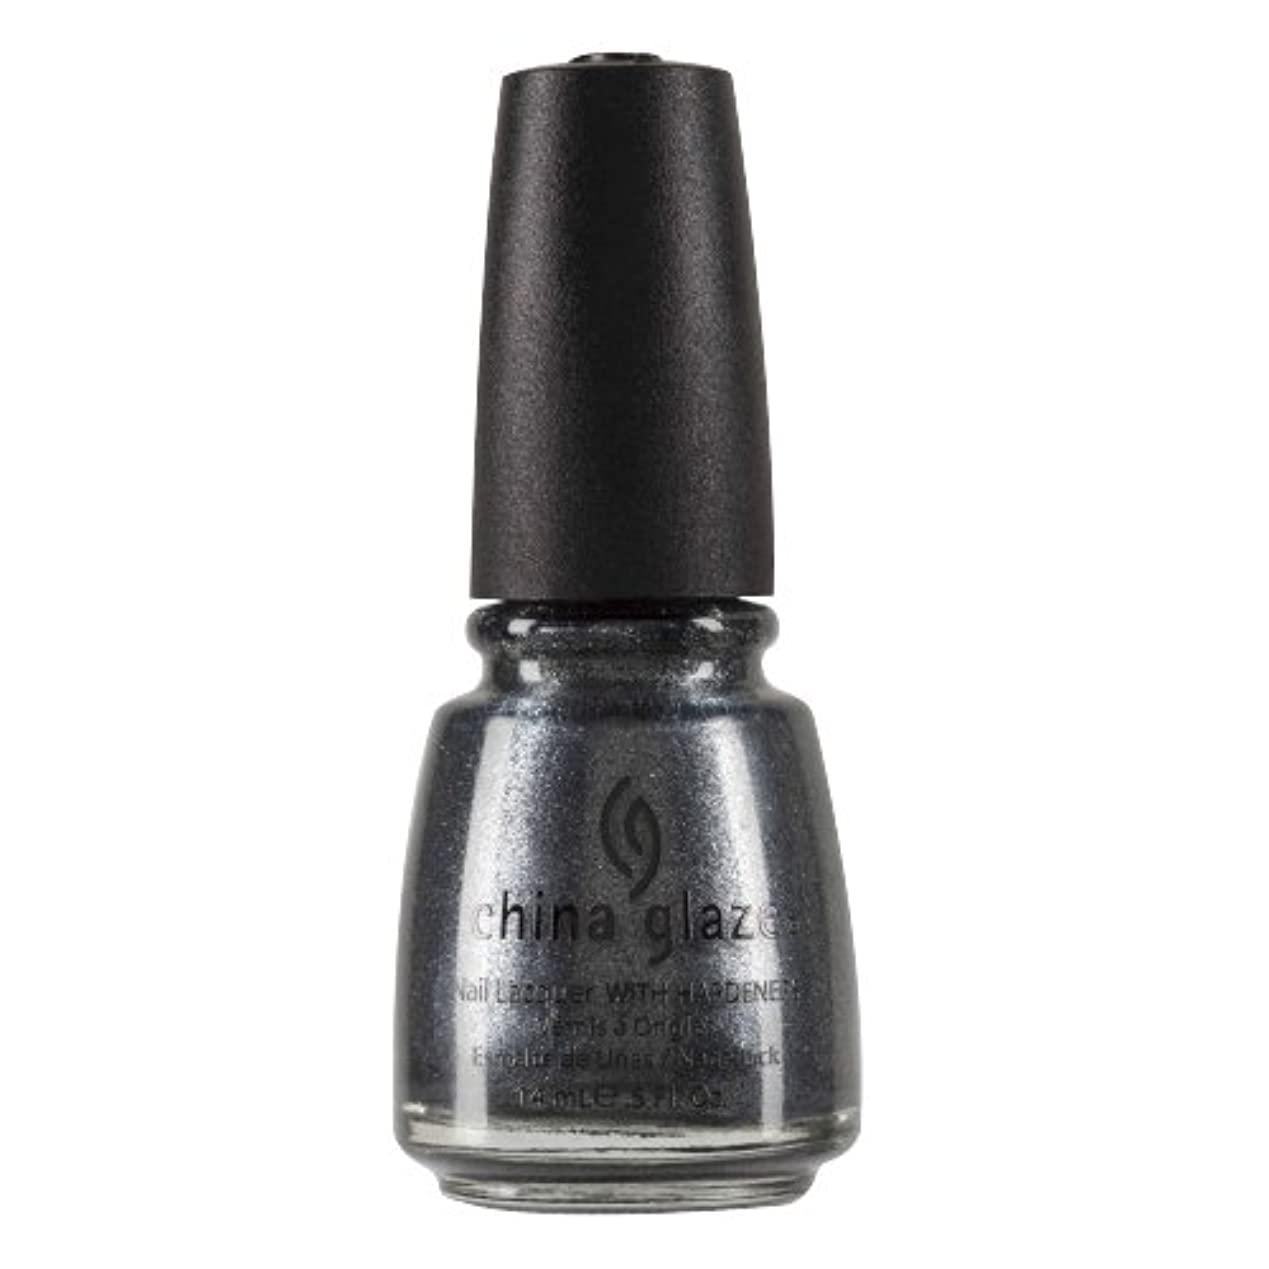 天文学に話す申請者CHINA GLAZE Nail Lacquer with Nail Hardner 2 - Jitterbug (並行輸入品)